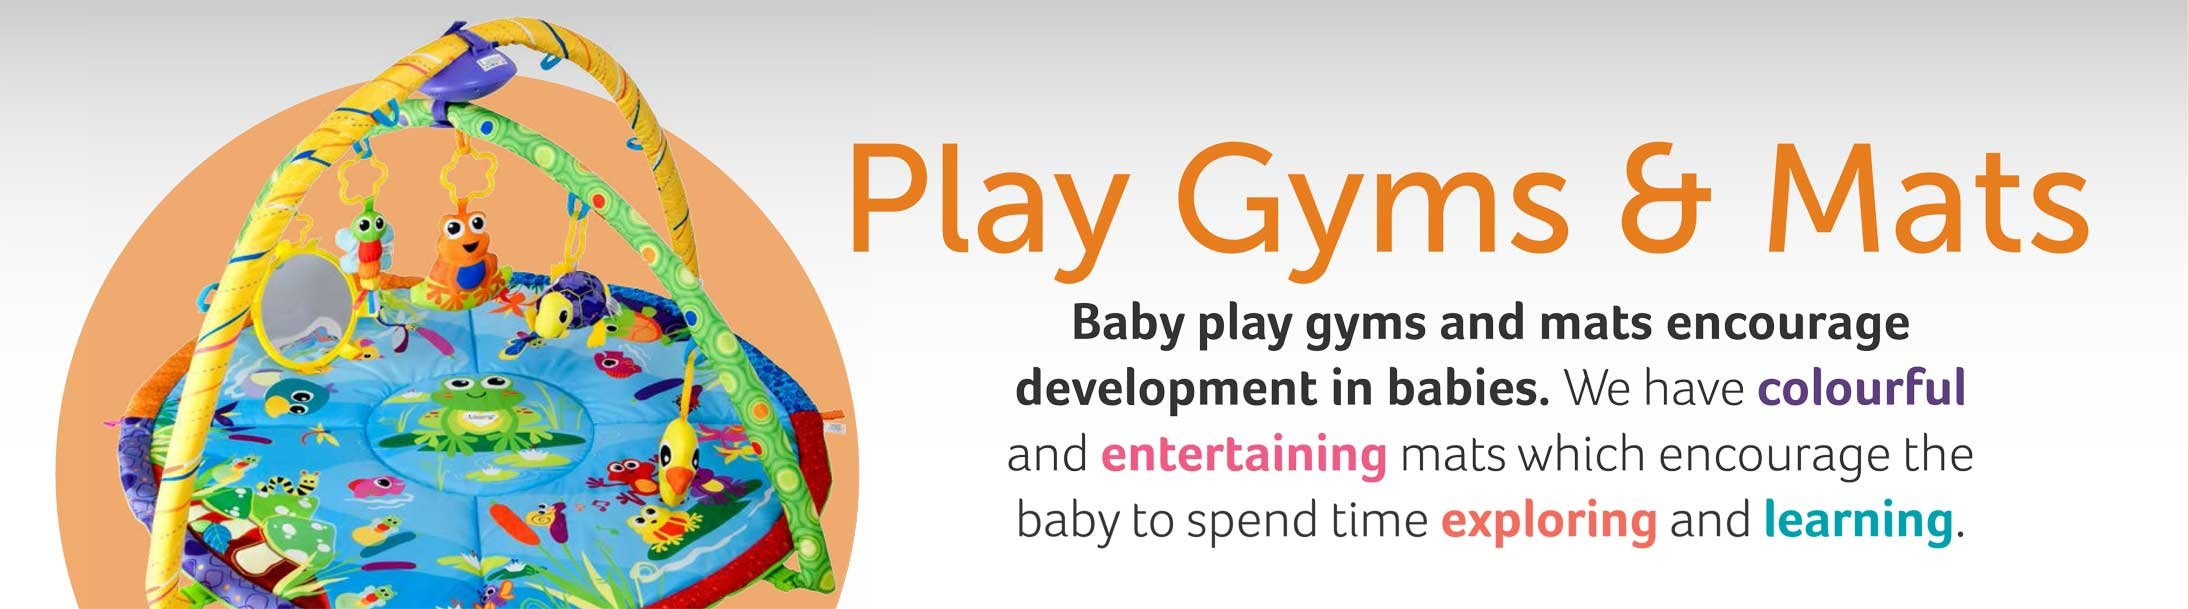 Play Gyms and Mats Baby play gyms and mats encourage development in babies. We have colourful and entertaining mats which encourage the baby to spend time exploring and learning